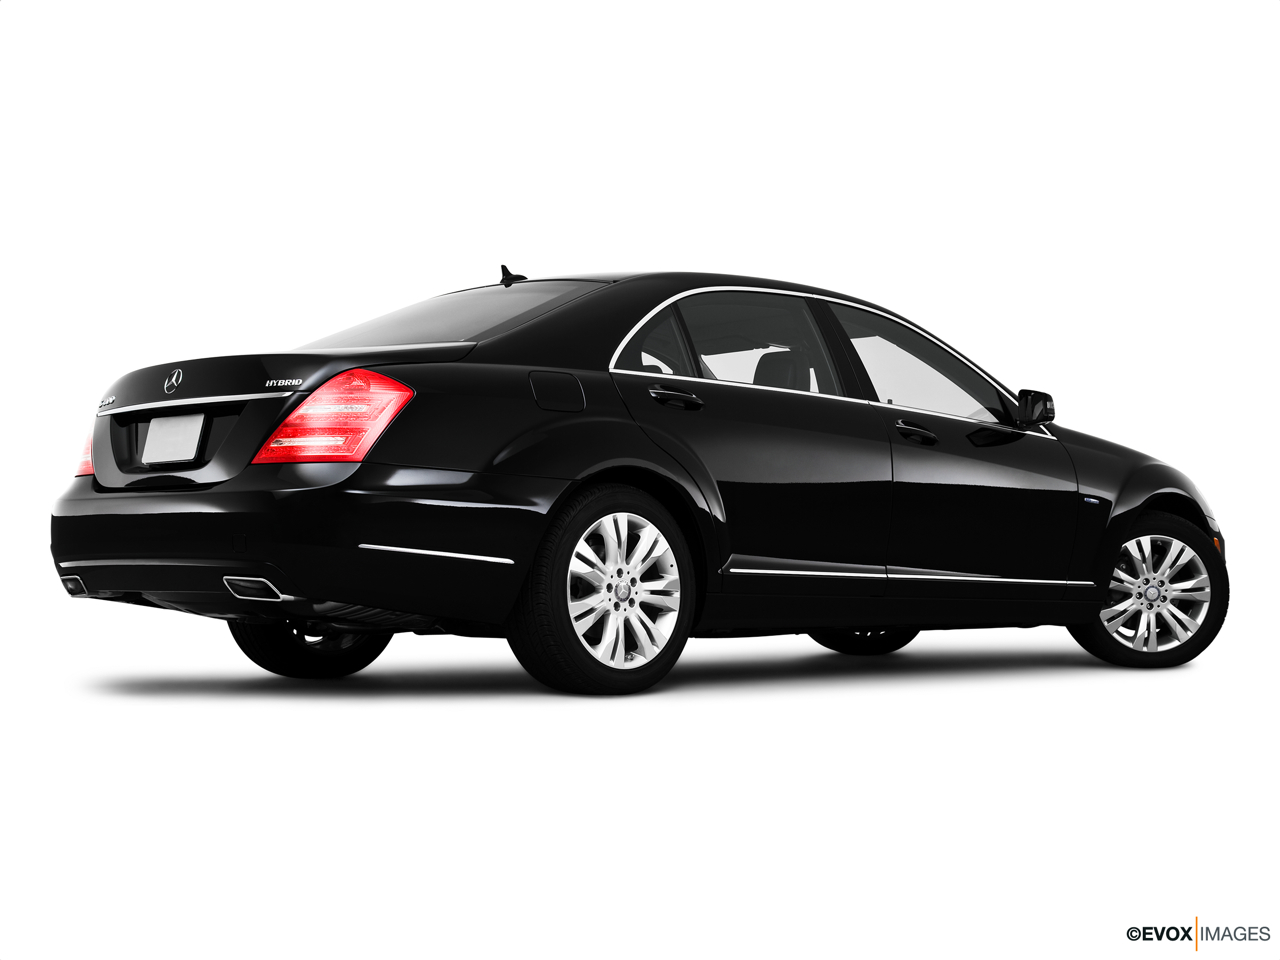 2010 Mercedes-Benz S-Class Hybrid S400 Low/wide rear 5/8.